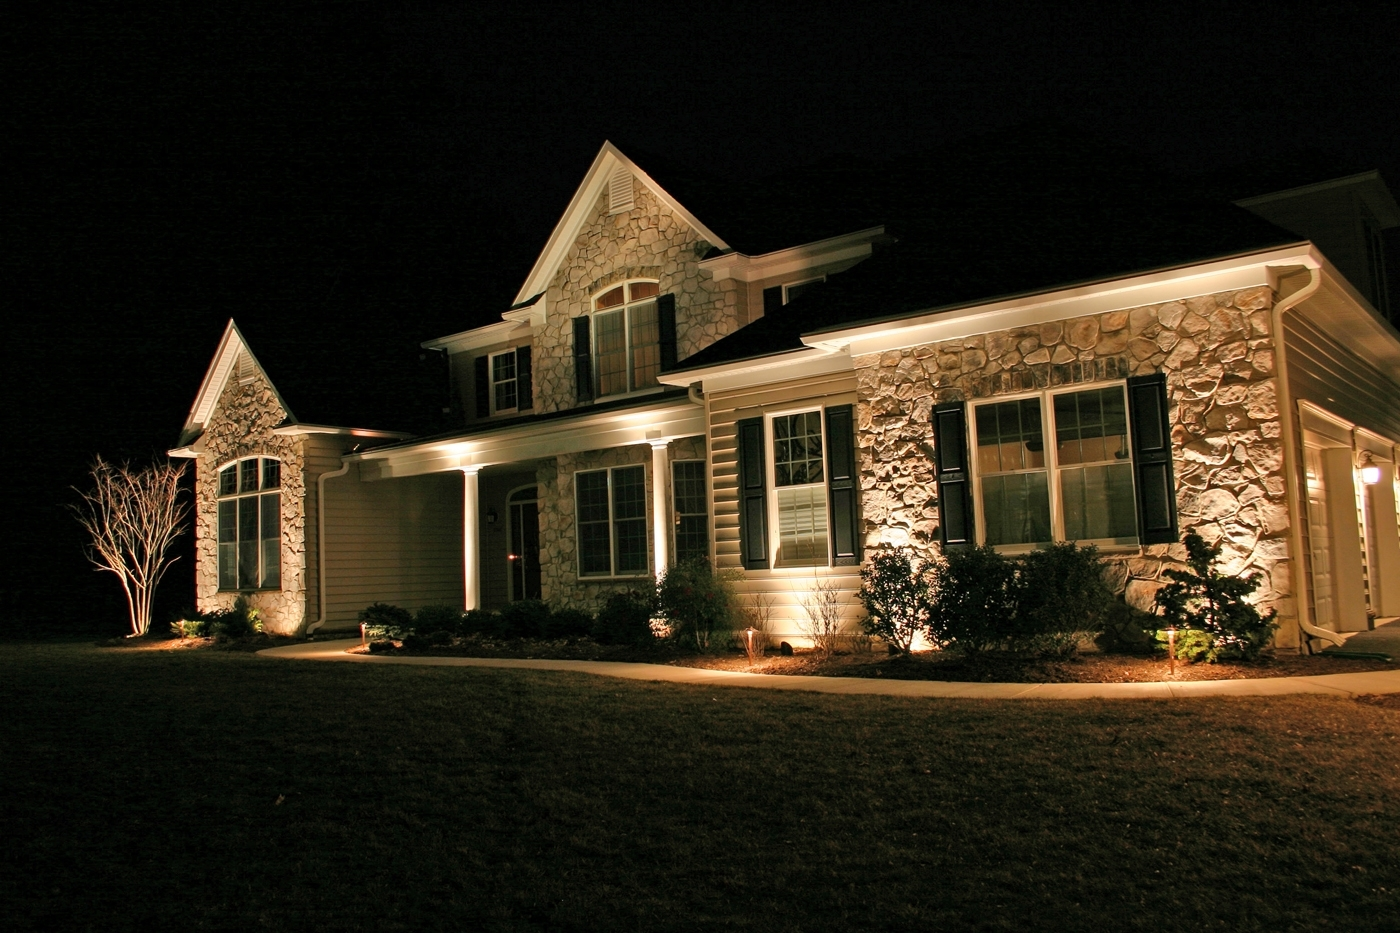 Well Known Outdoor Wall Wash Lighting Fixtures Regarding Wall Washing Lighting. Wall Washing Lighting F – Socopi (View 7 of 20)